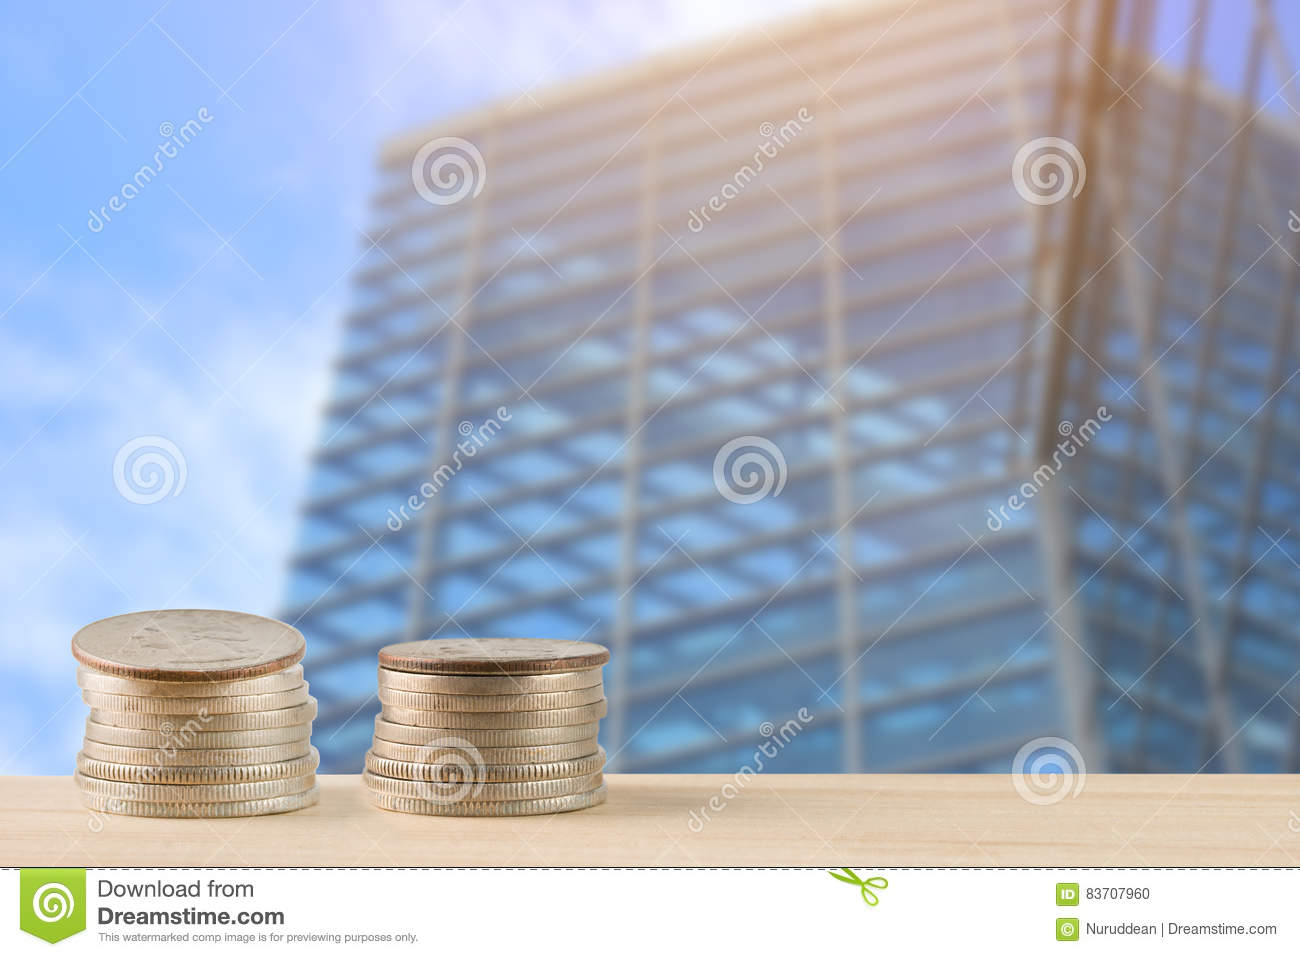 Money Coins Pile On Table With Building In Urban Stock Photo